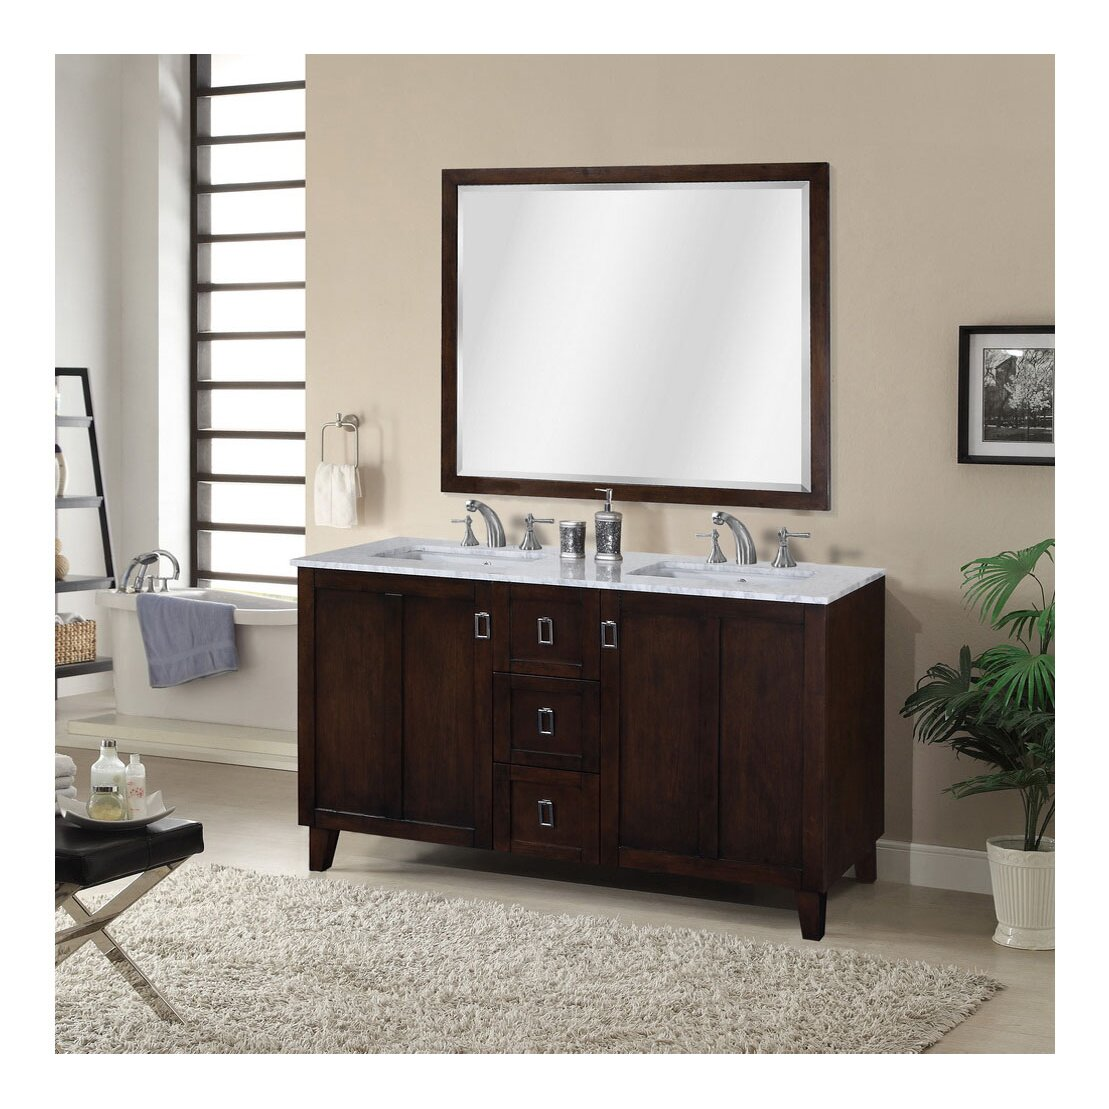 InFurniture IN 32 Series 60 amp quot  Double Sink Bathroom Vanity Set. InFurniture IN 32 Series 60 quot  Double Sink Bathroom Vanity Set